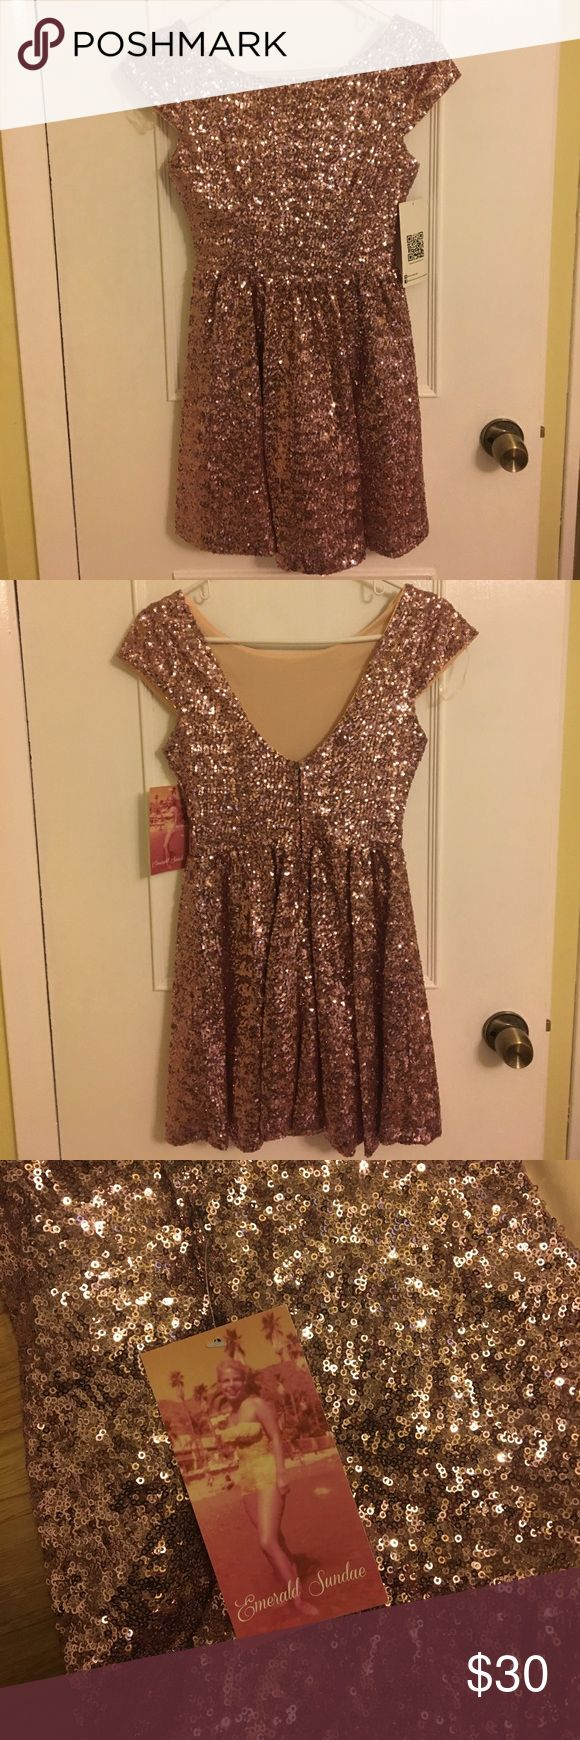 Never worn, with tags. Pink sparkly dress. Dress is a size 3. Emerald Sundae Dresses Prom